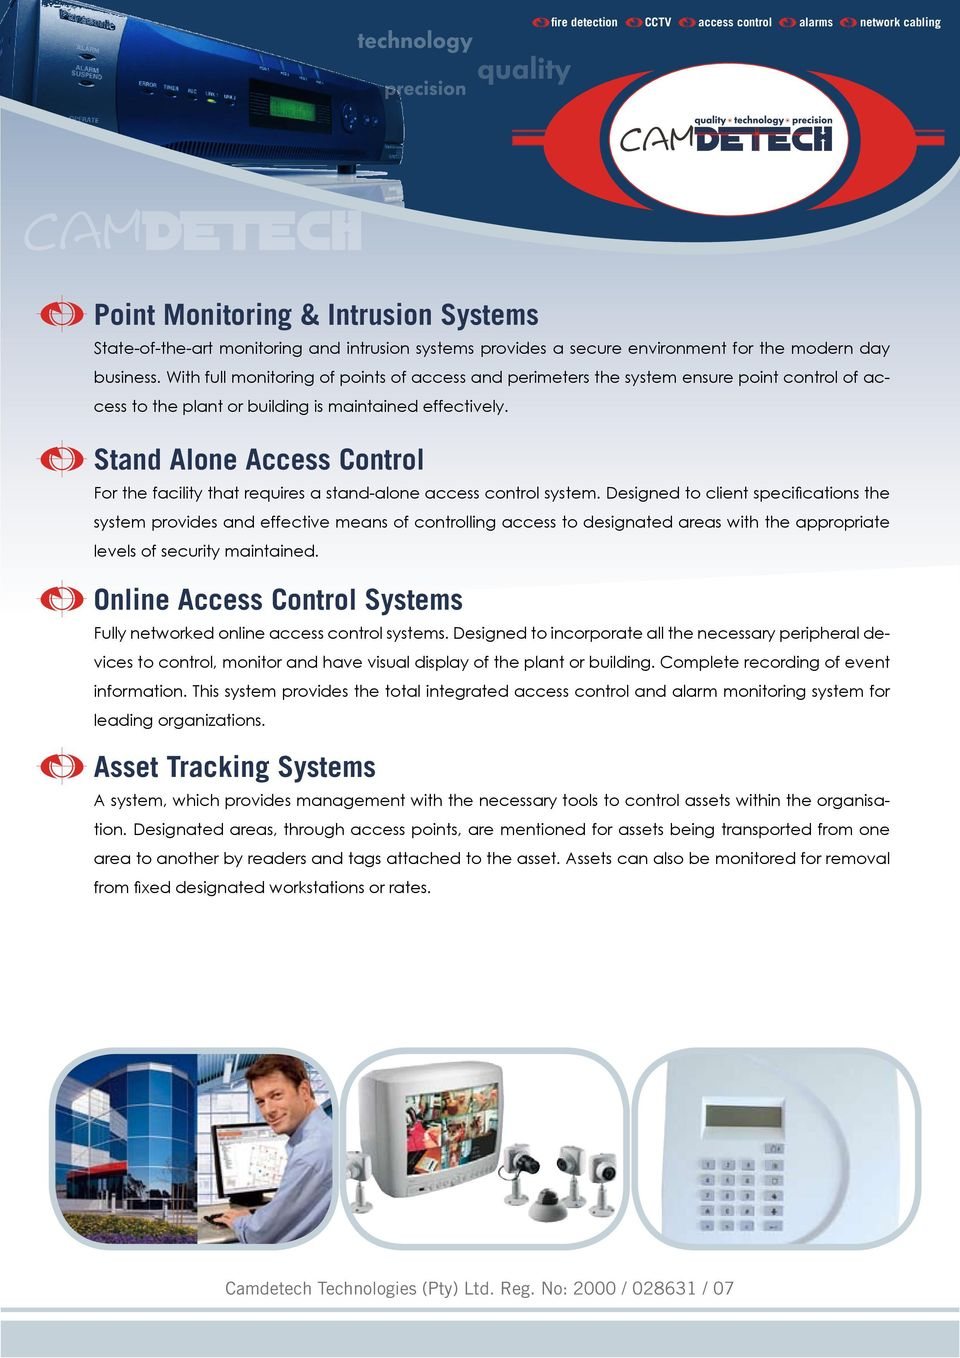 Stand Alone Access Control For the facility that requires a stand-alone system.